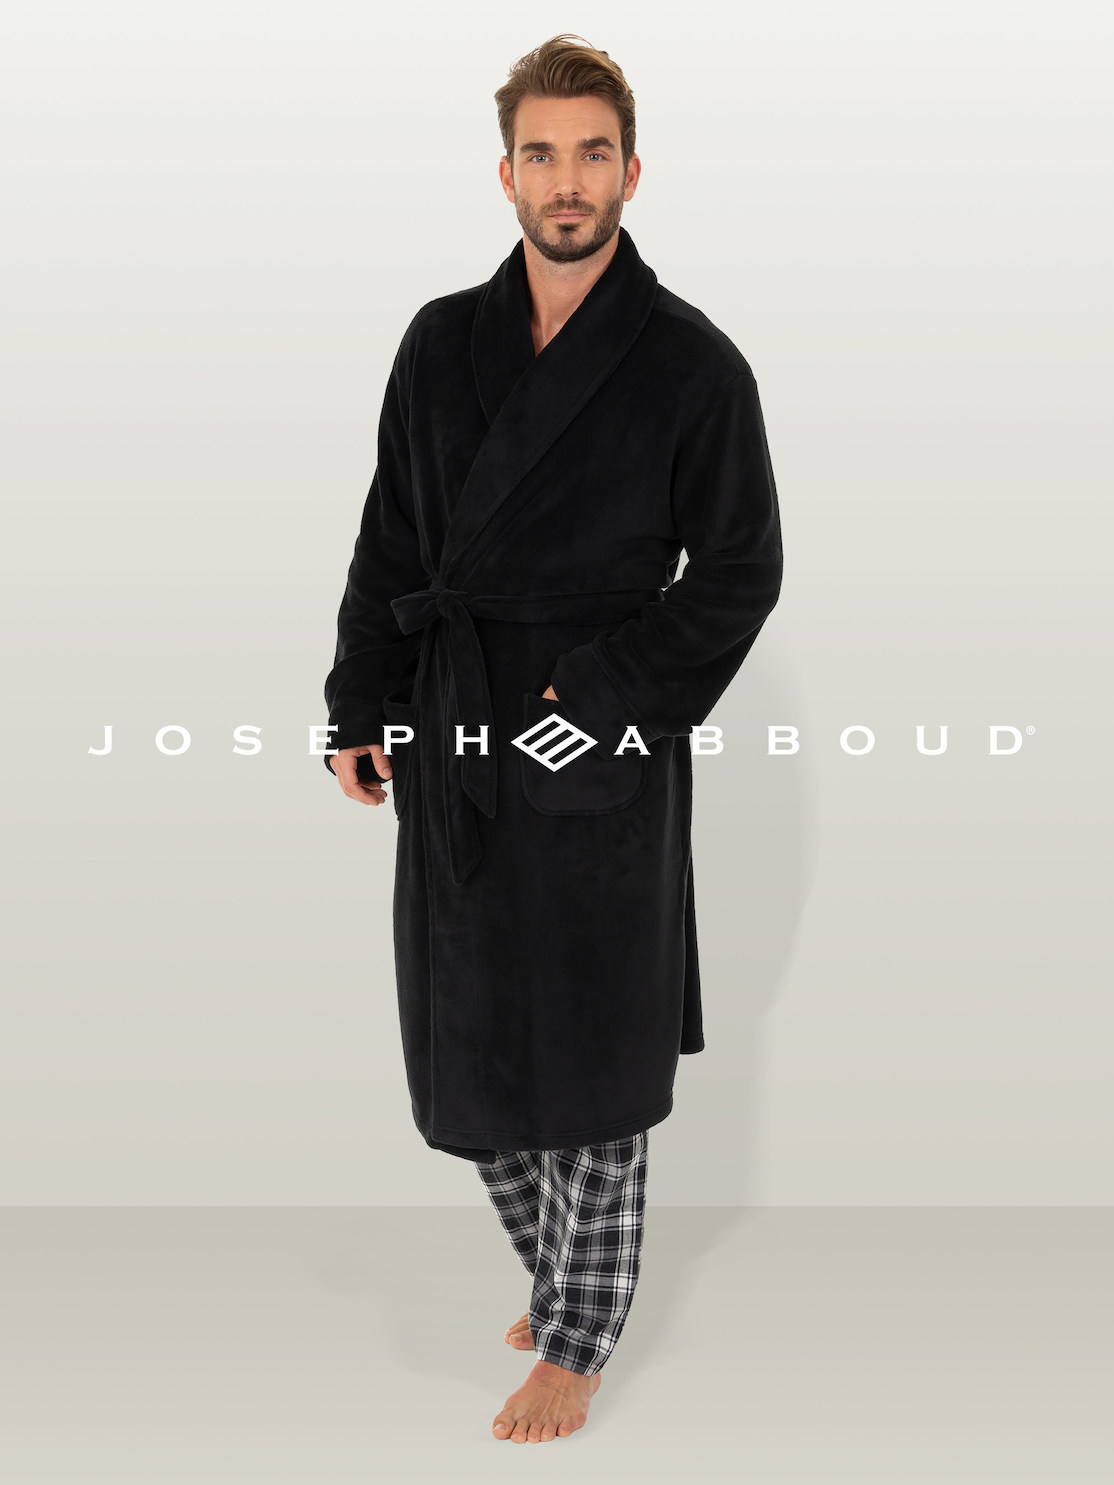 The Joseph Abboud sleepwear and loungewear offering, set for spring 2022, will feature a full line of pajamas, coordinated sleep sets, robes and pajama shorts for men.